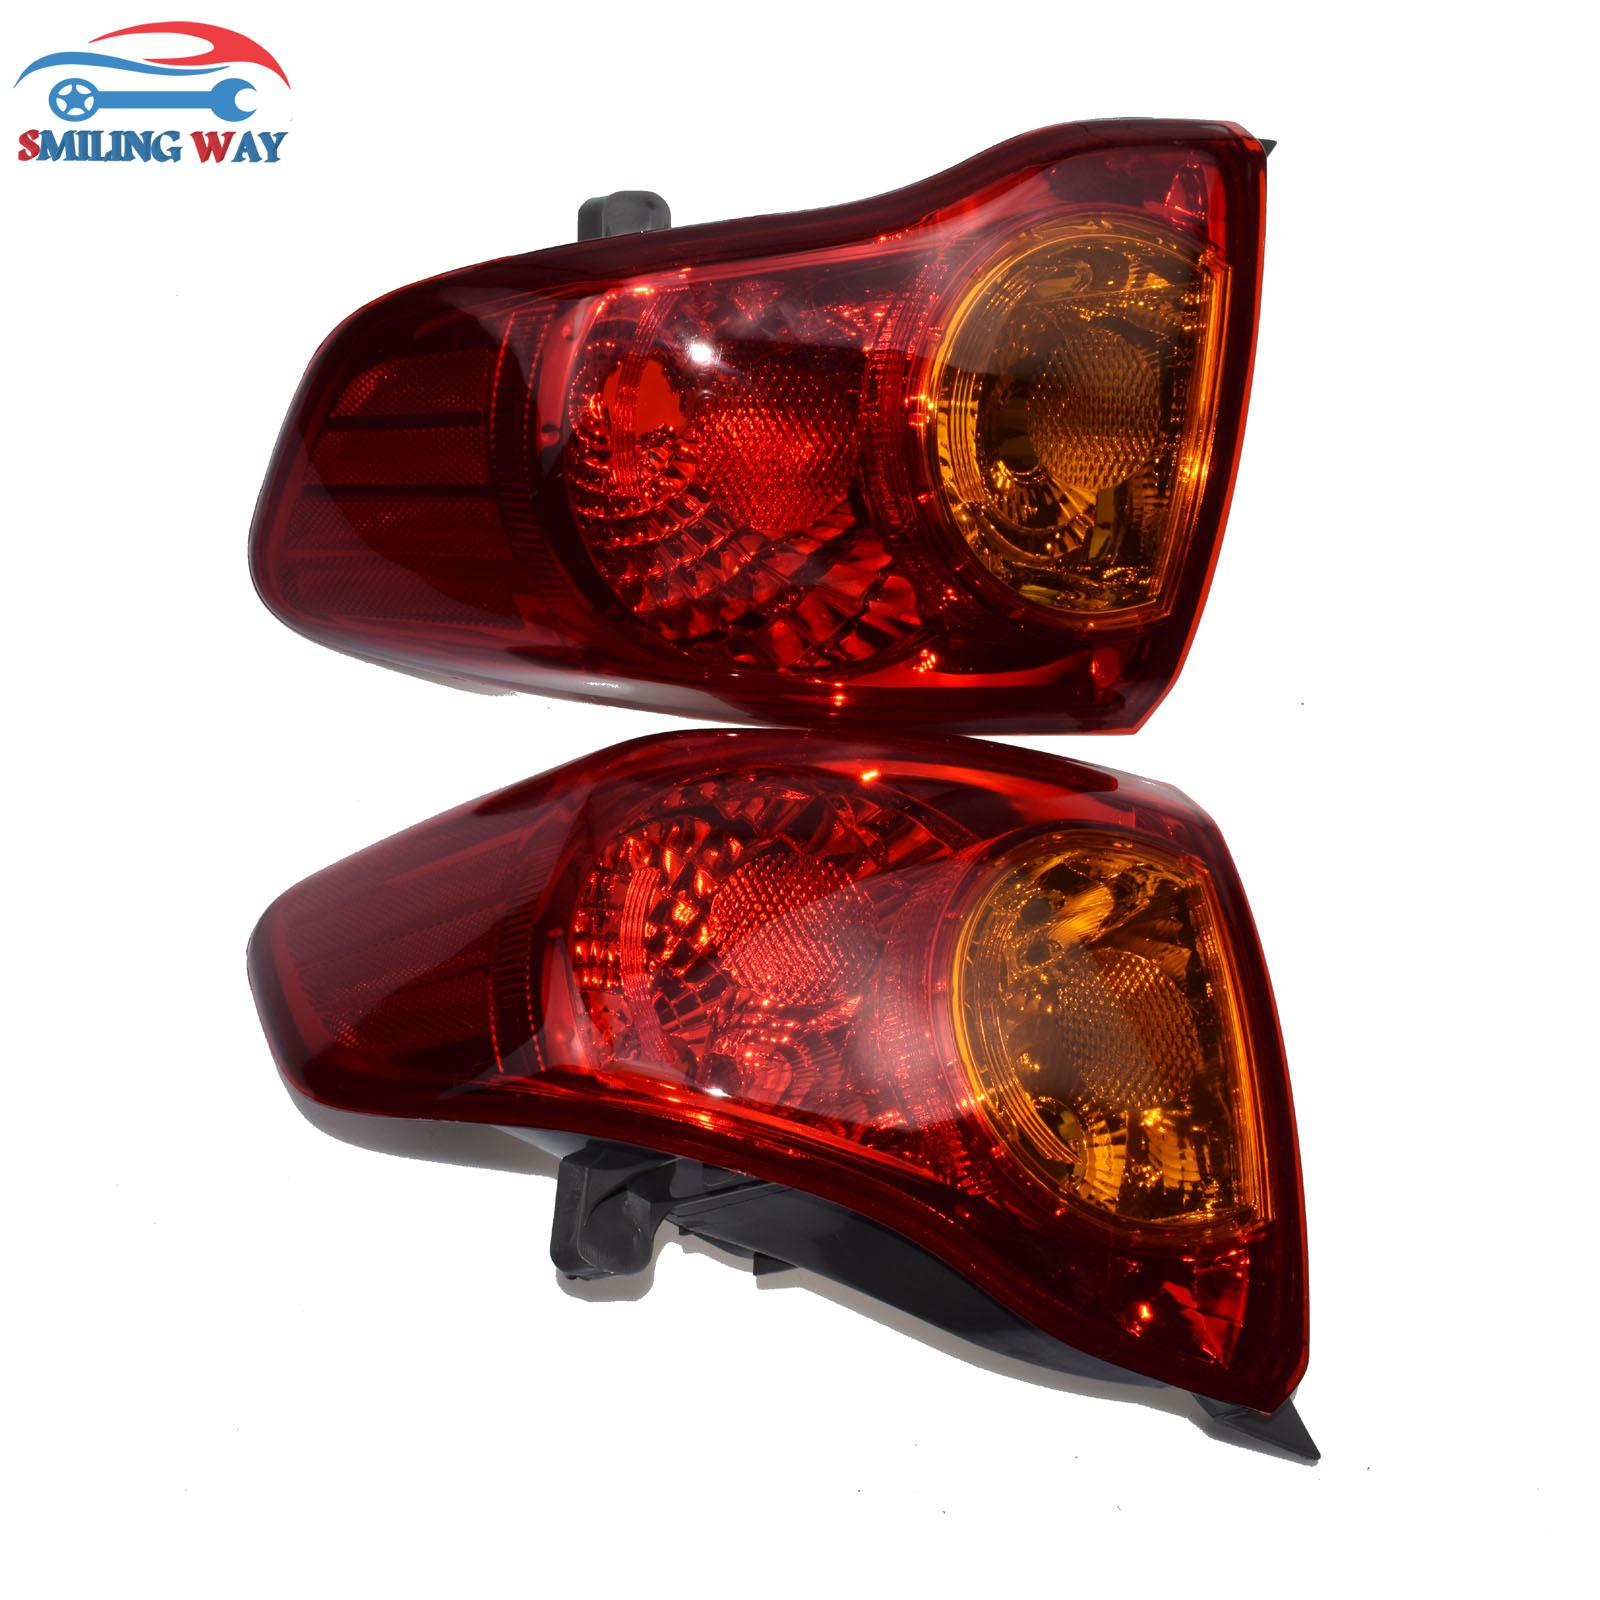 Smiling Way Taillight Brake Light Lamp Housing Cover Left Right For Toyota Corolla 2009 2010 Oe 8156002460 8155002460